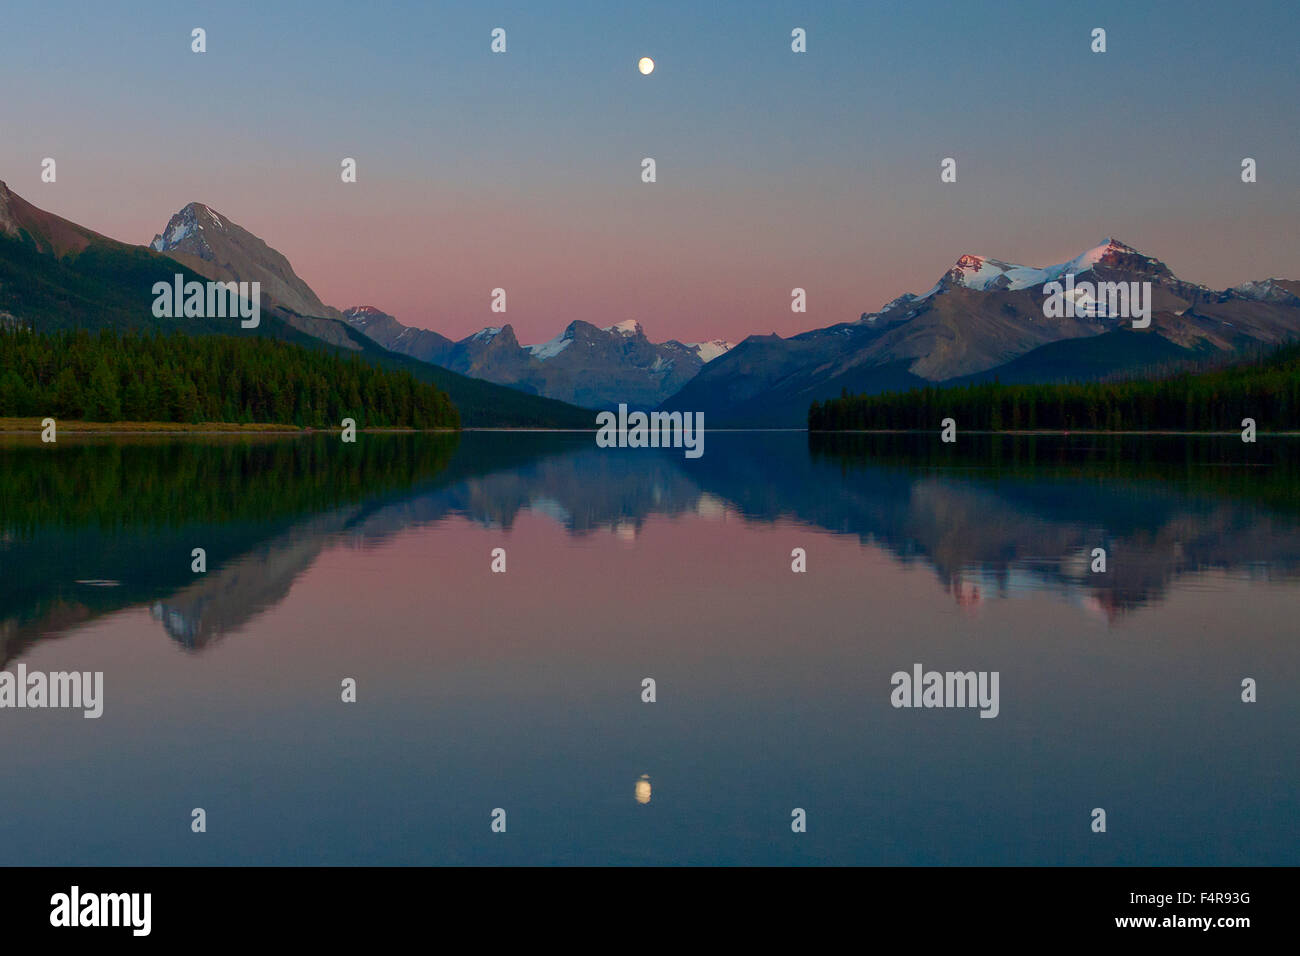 Canada, province, nature, landscape, Rockies, Canadian Rockies, mountains, lake, scenery, Alberta, Jasper, National - Stock Image